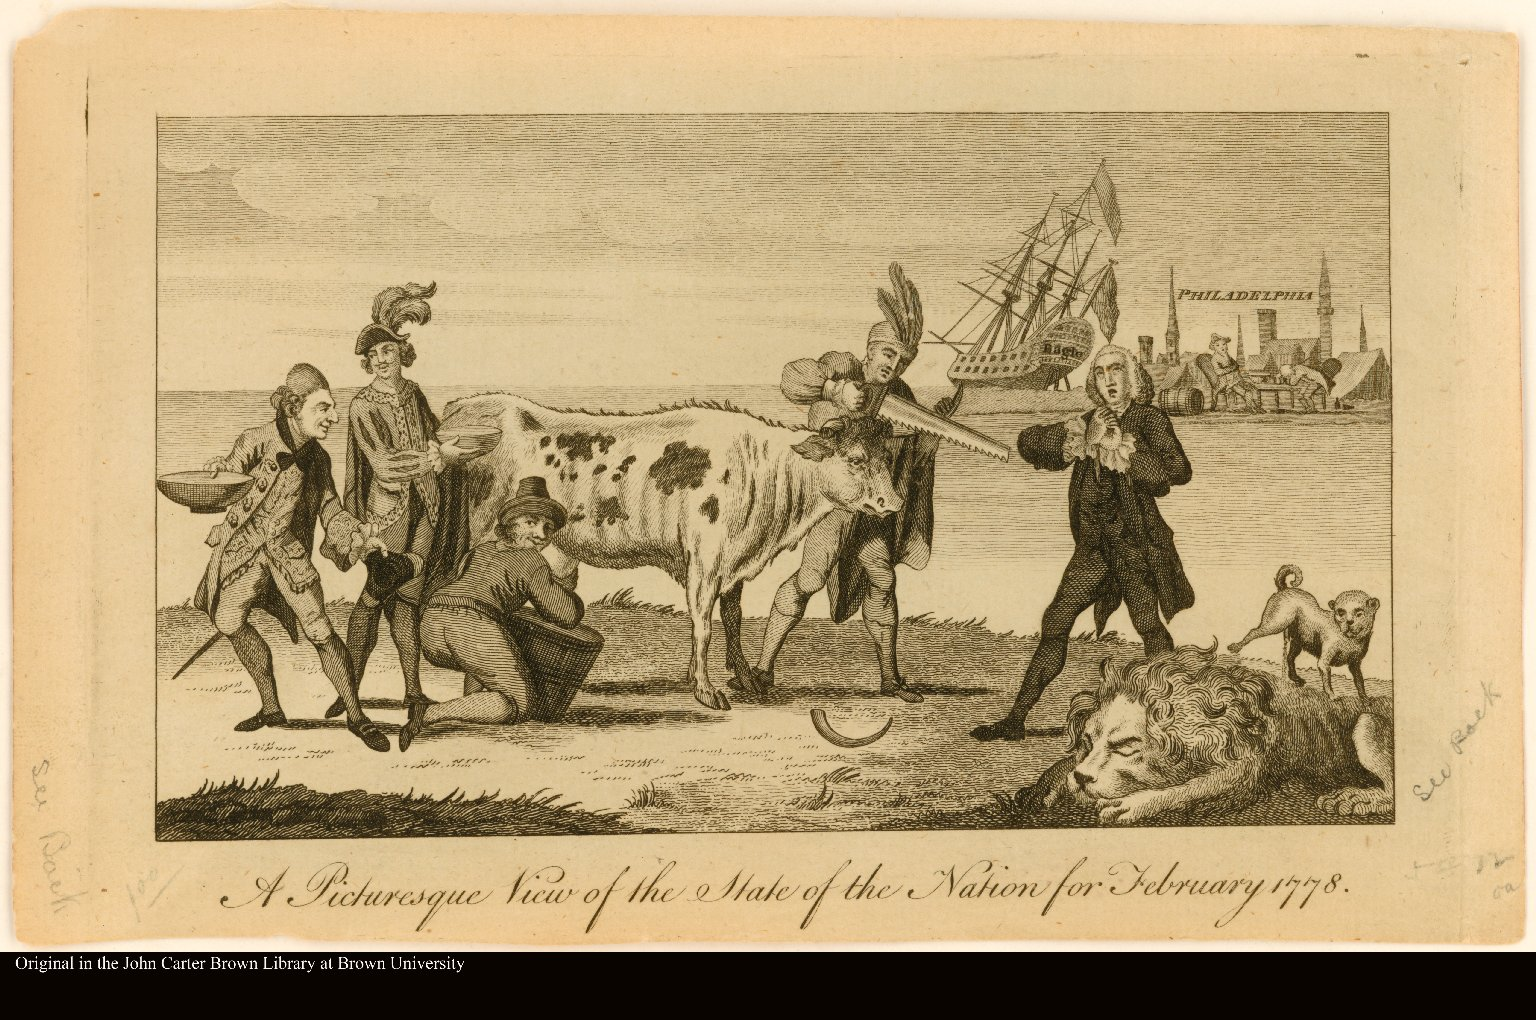 A PICTURESQUE VIEW OF THE STATE OF THE NATION FOR FEBRUARY 1778.